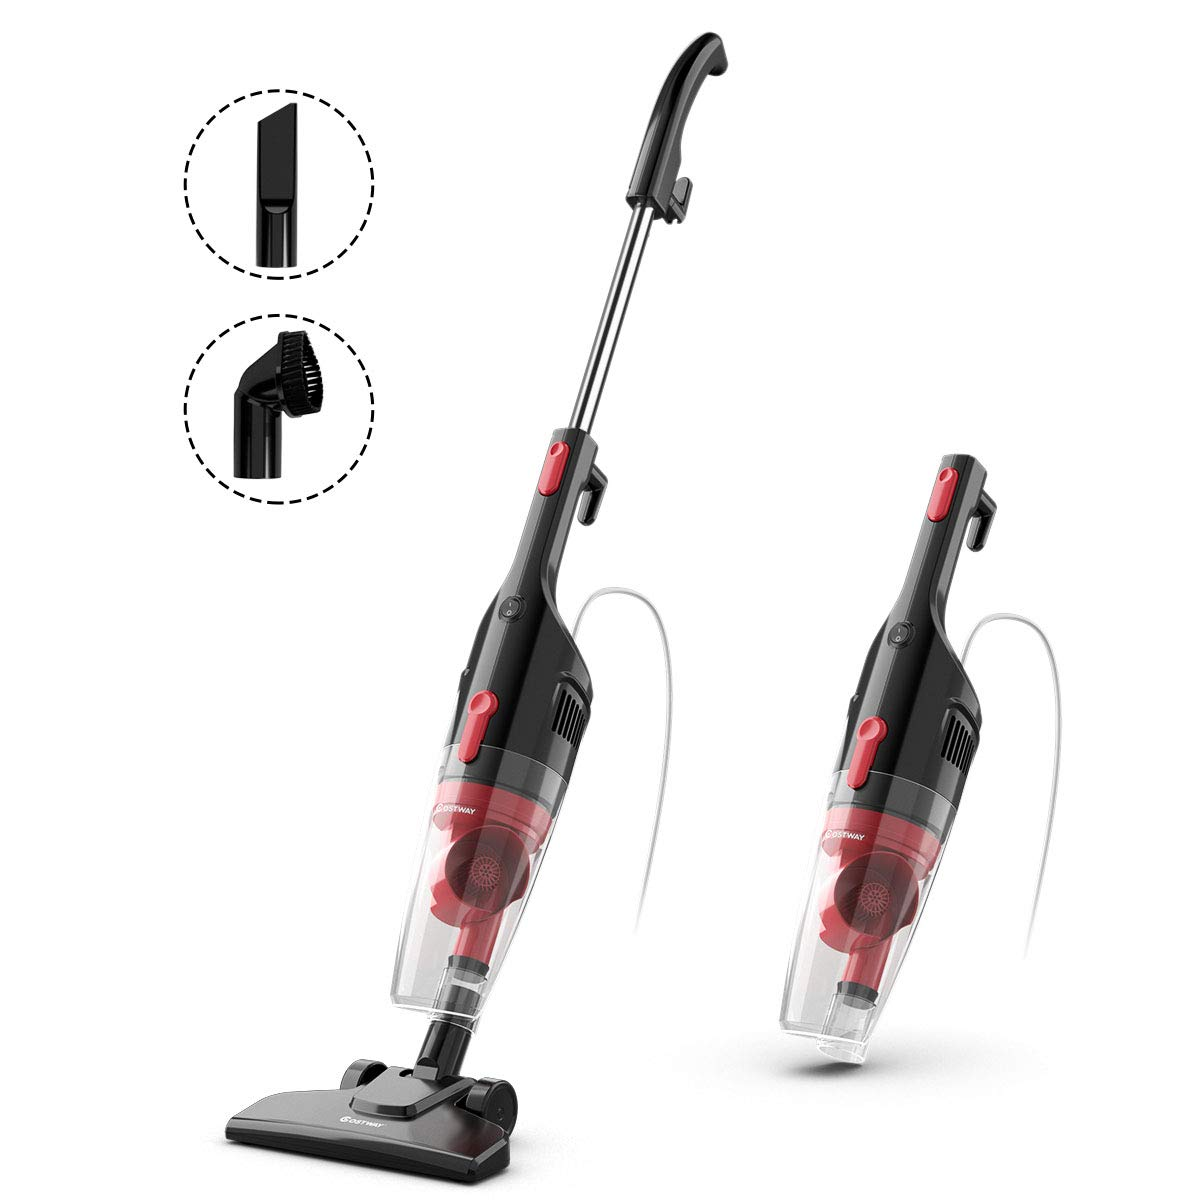 Cordless Vacuum, Hikeren Stick Vacuum Cleaner, Powerful Lightweight 2 in 1 Handheld Vacuum with Rechargeable Lithium Ion Battery for Hardwood Floor Carpet Pet Hair, Black